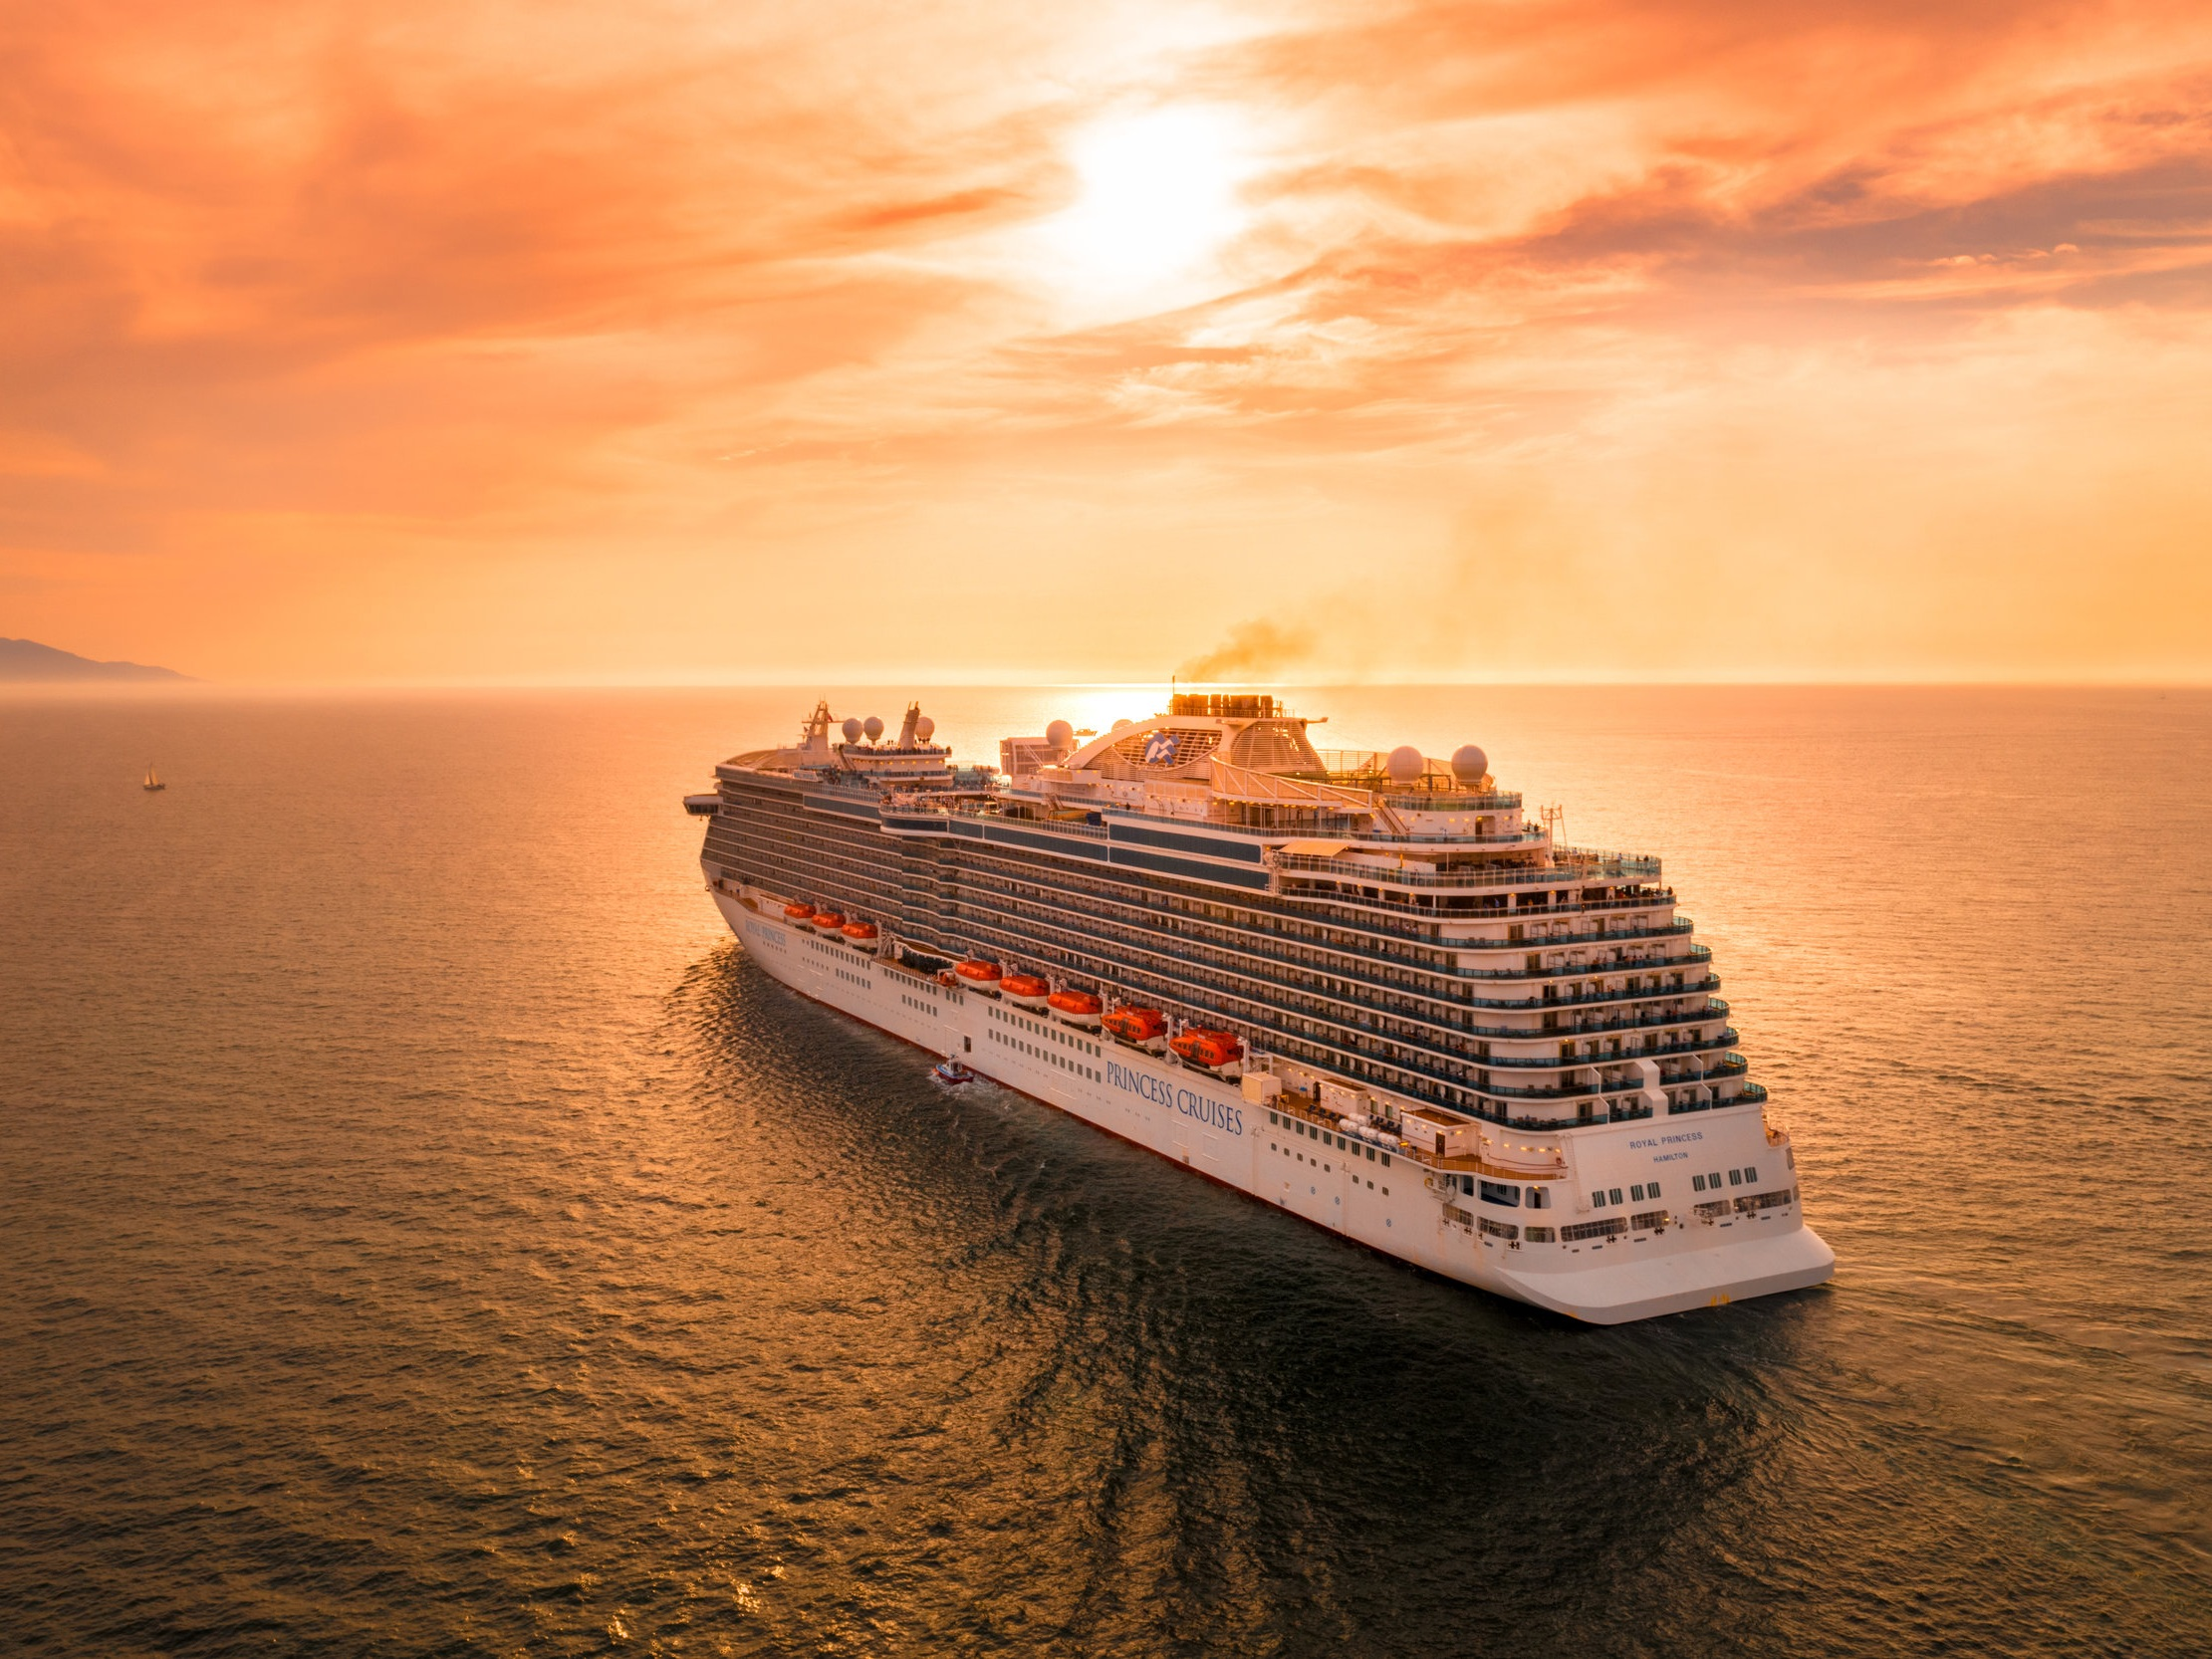 Cruises - The perfect cruise, at the best price. From selecting the perfect destination to packing all the right things, we've got you covered!